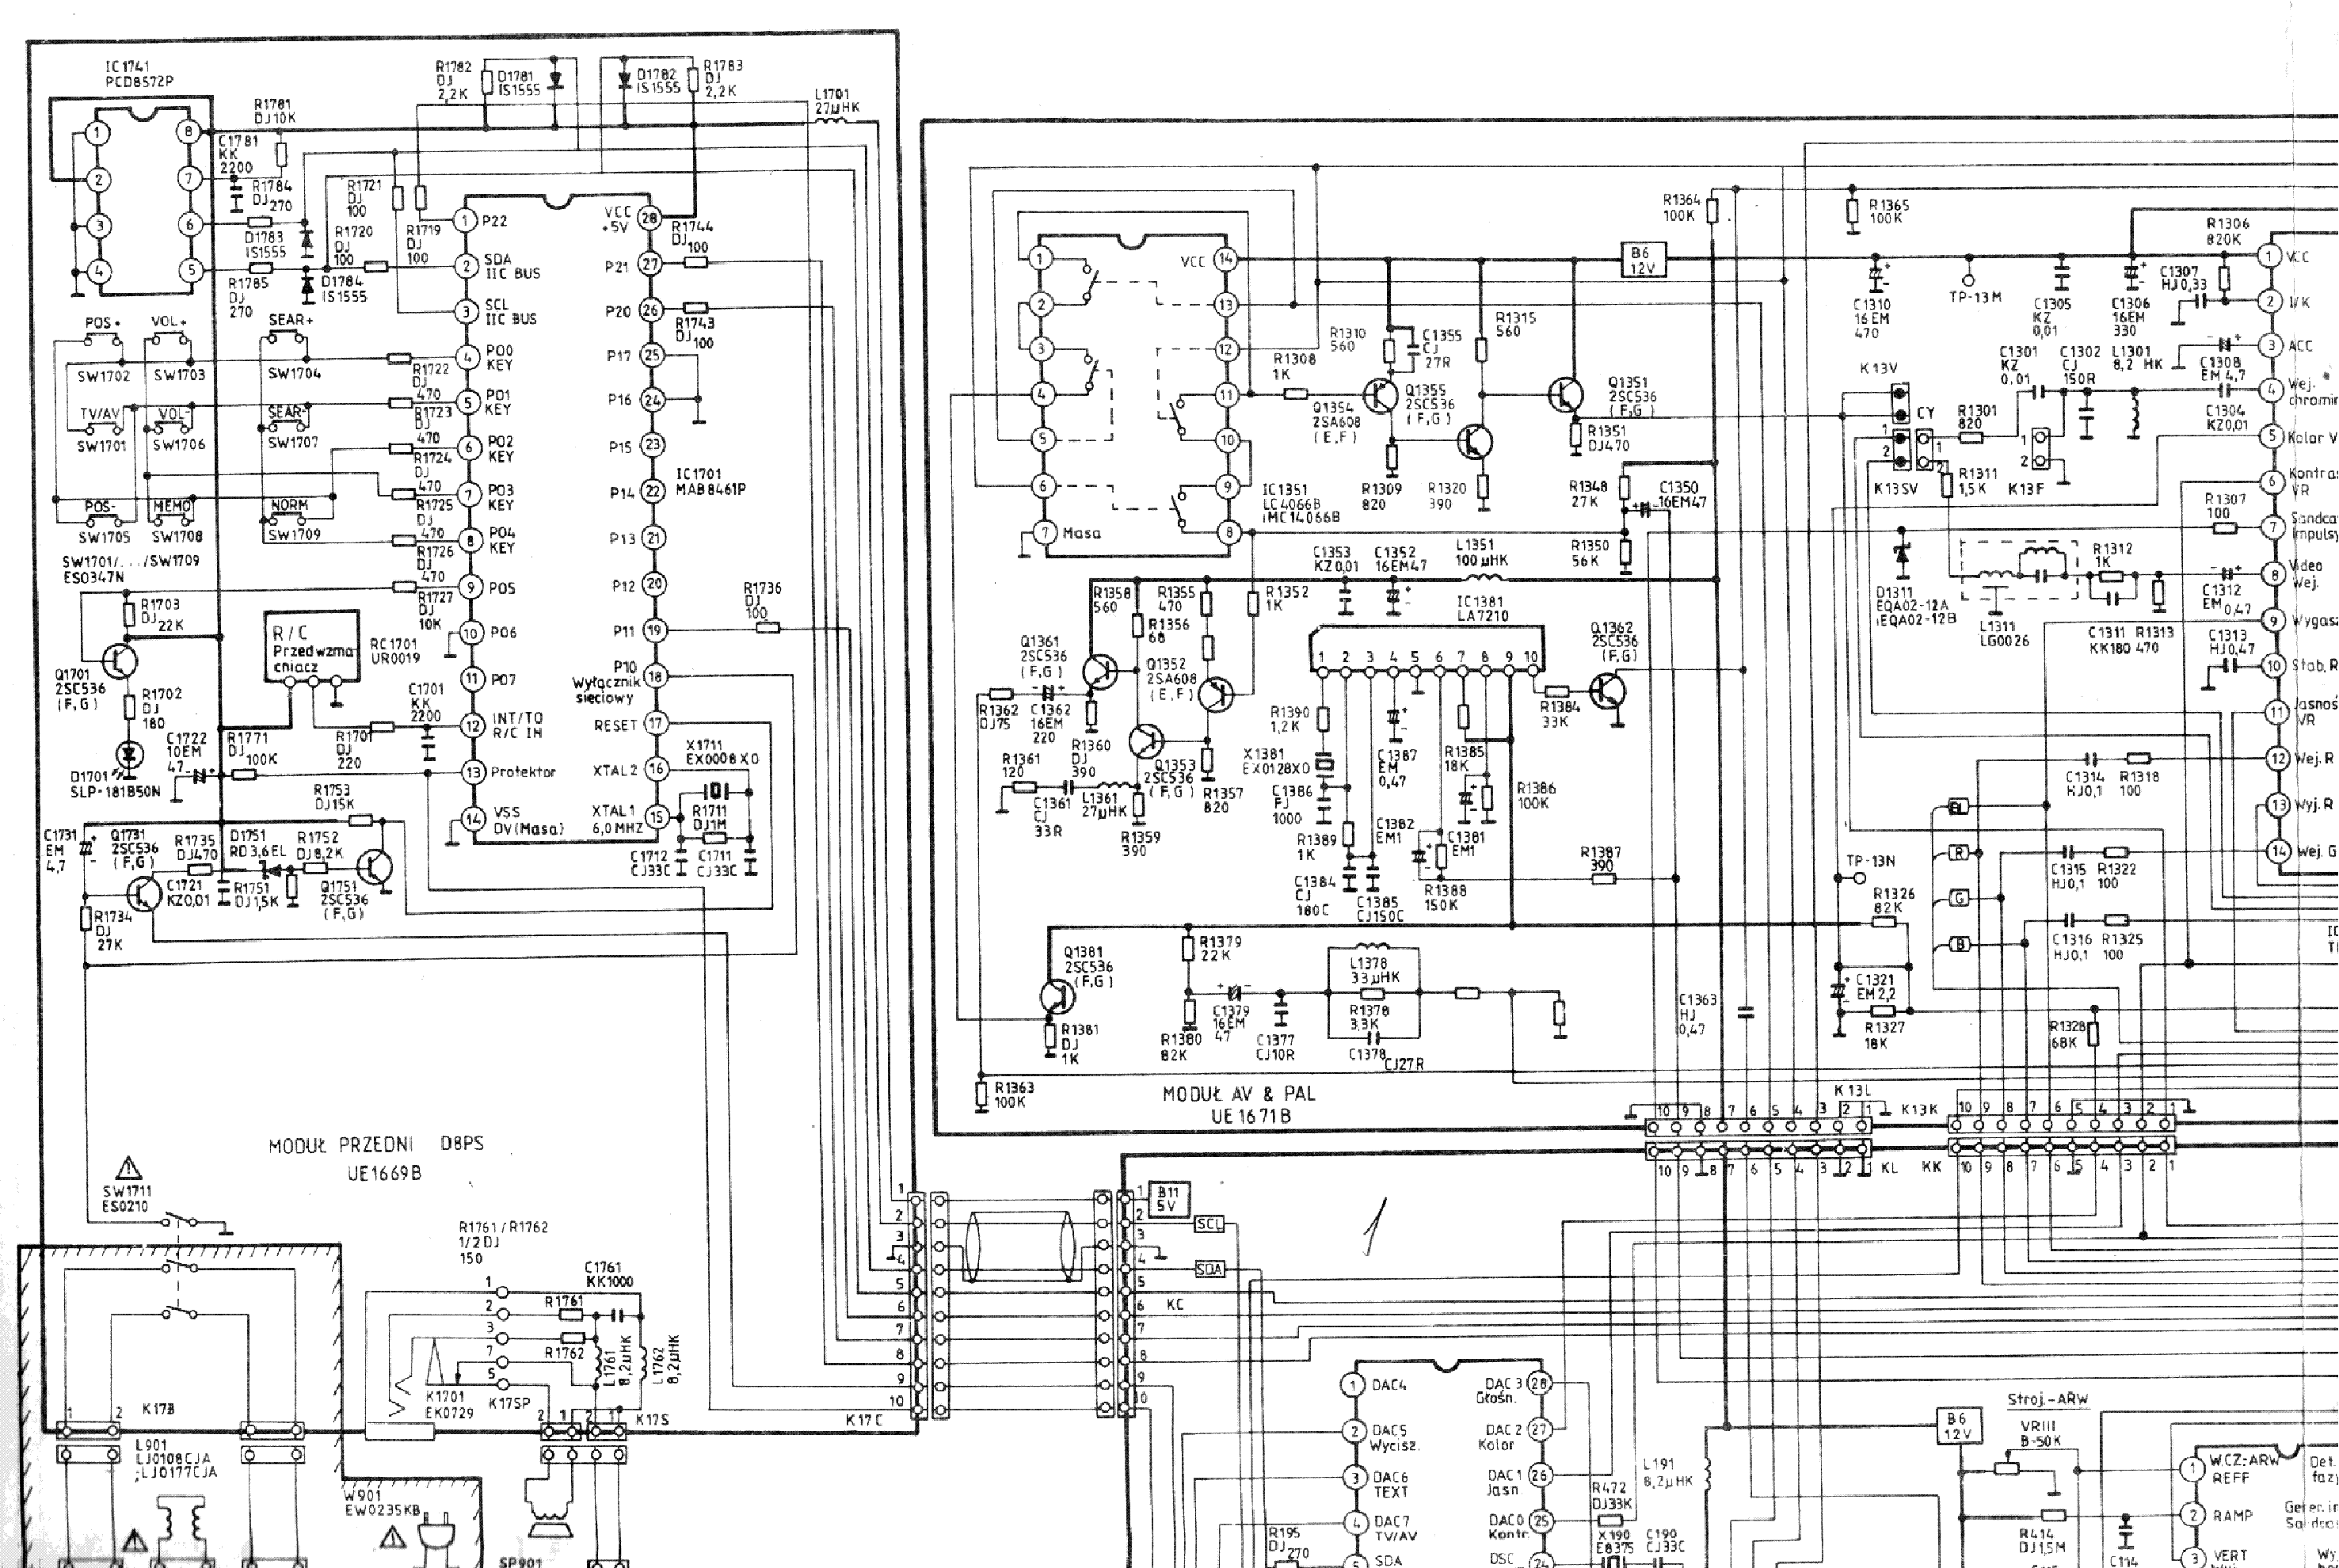 SANYO CEP2140 Service Manual download, schematics, eeprom